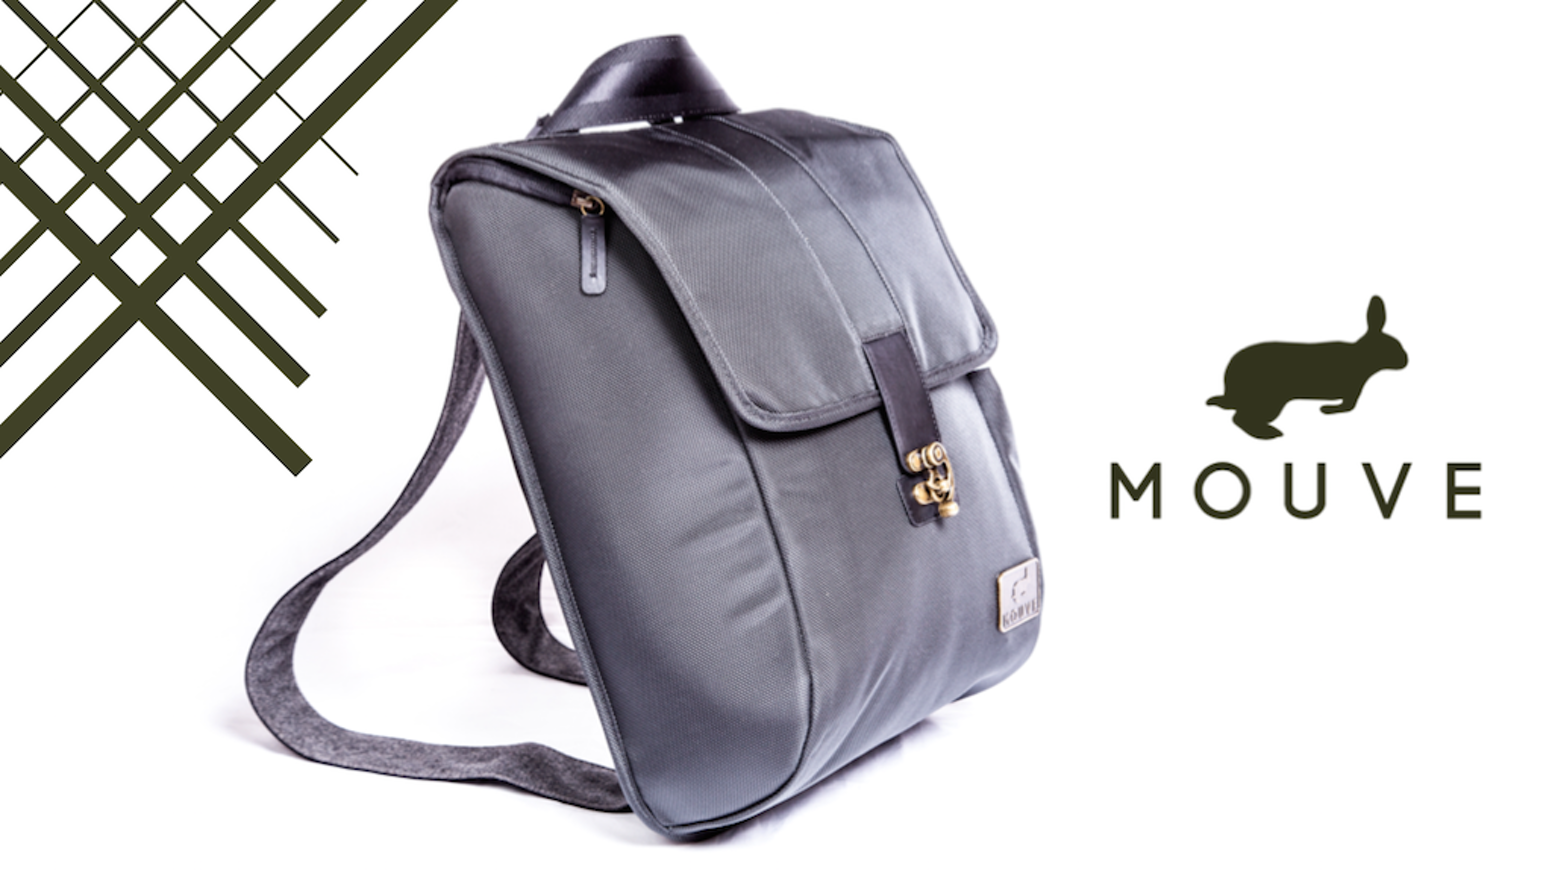 25f9097b62 Converts from a backpack to a messenger bag with one simple step. Its  classic